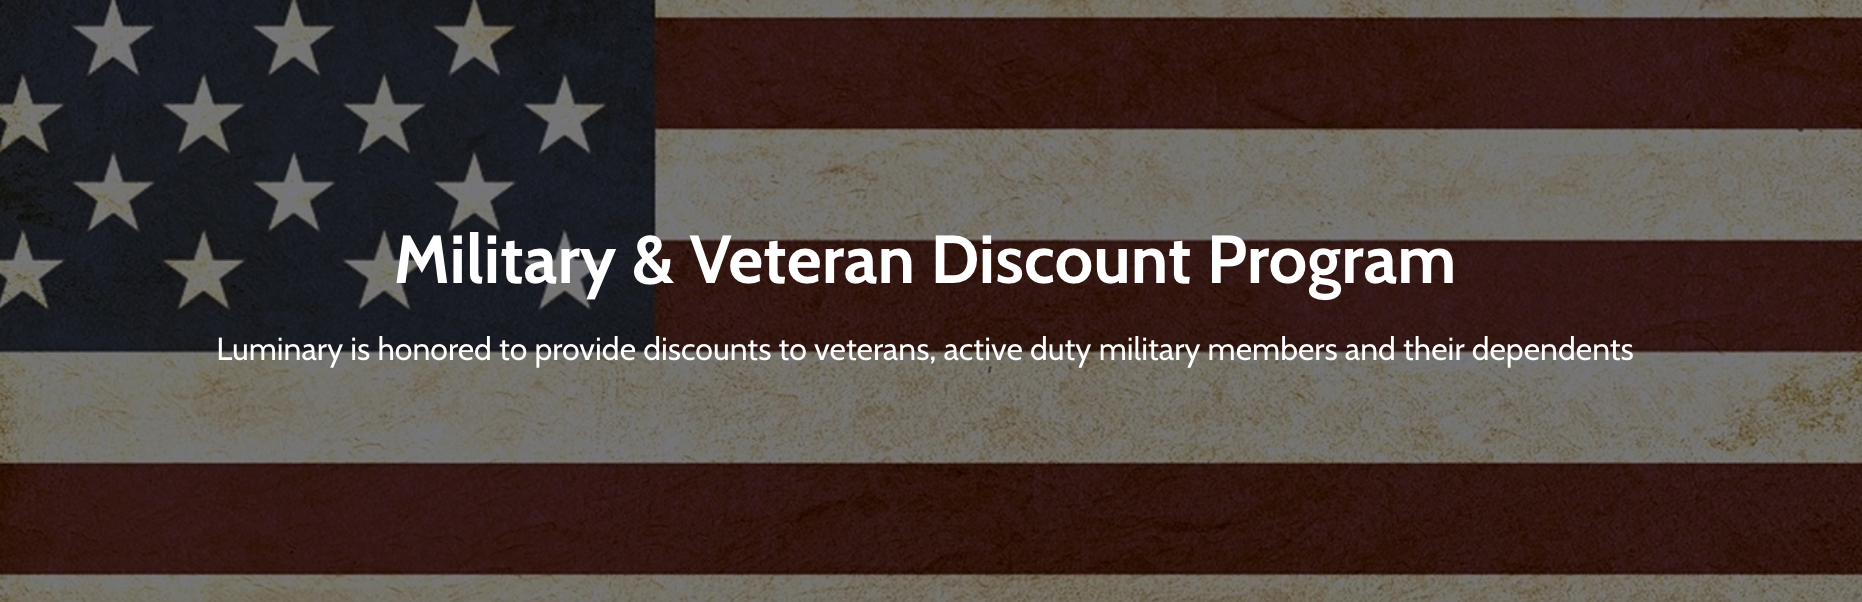 Luminary Global Military Veteran Discounts